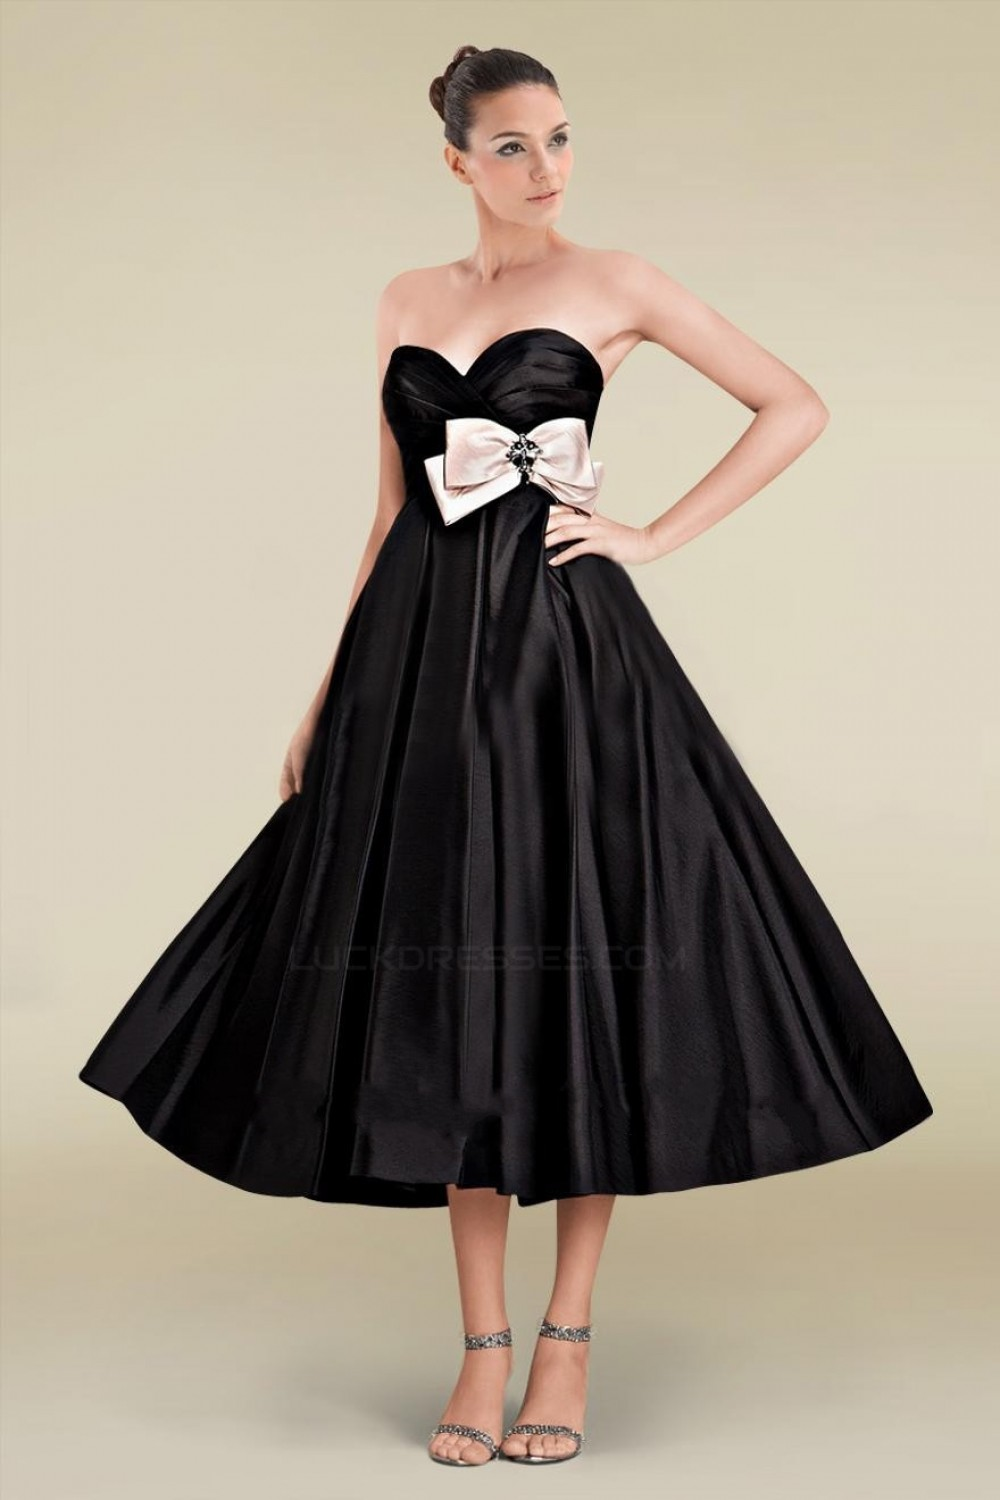 e3735c69c37e A-Line Sweetheart Short Black Bridesmaid Dresses/Wedding Party ...